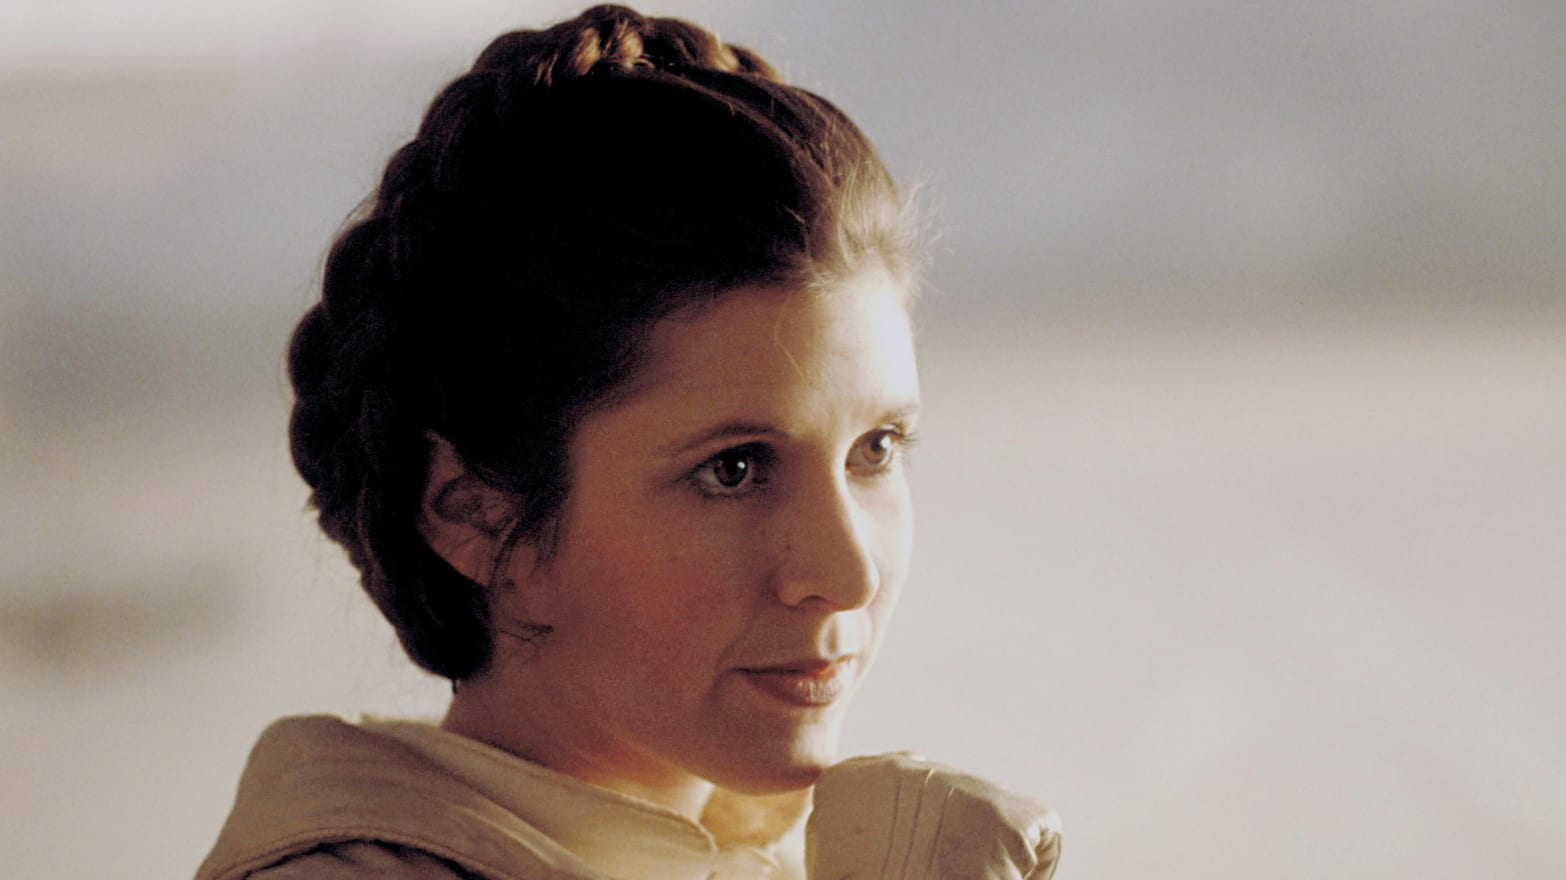 More Than Princess Leia: Carrie Fisher's Beautifully